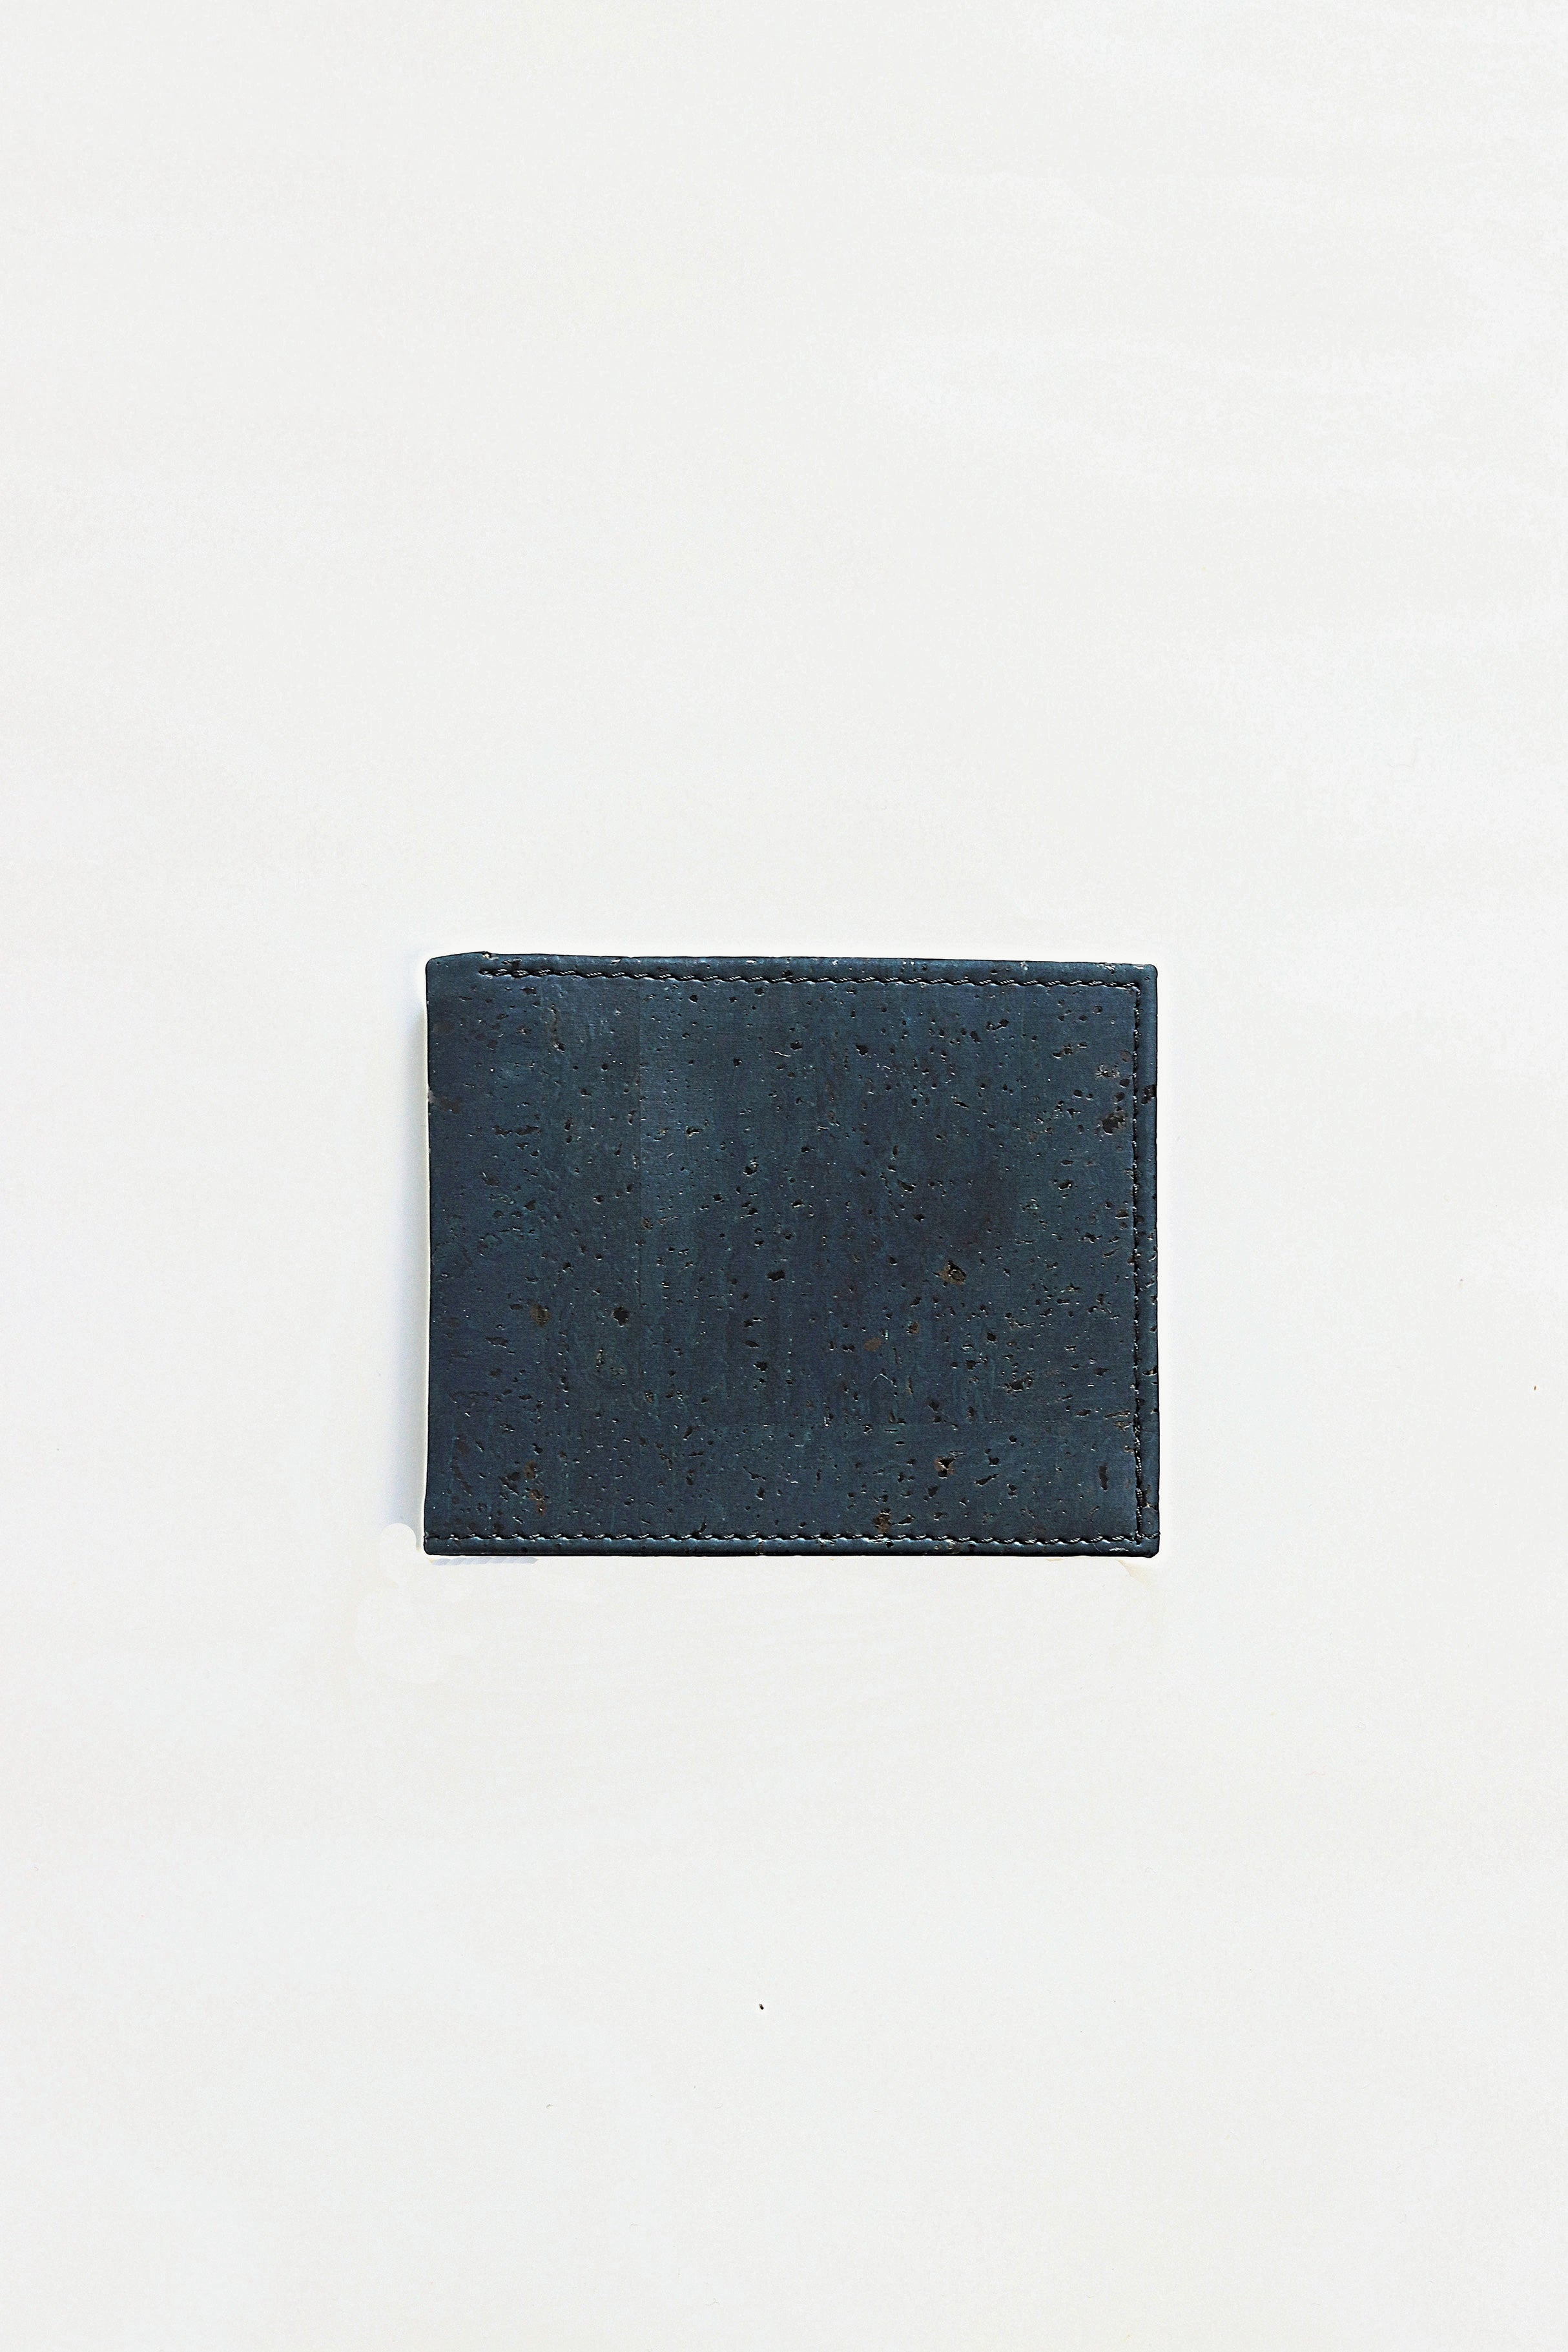 Forester Products navy blue, sustainable, cork, vegan leather bifold wallet front angle.